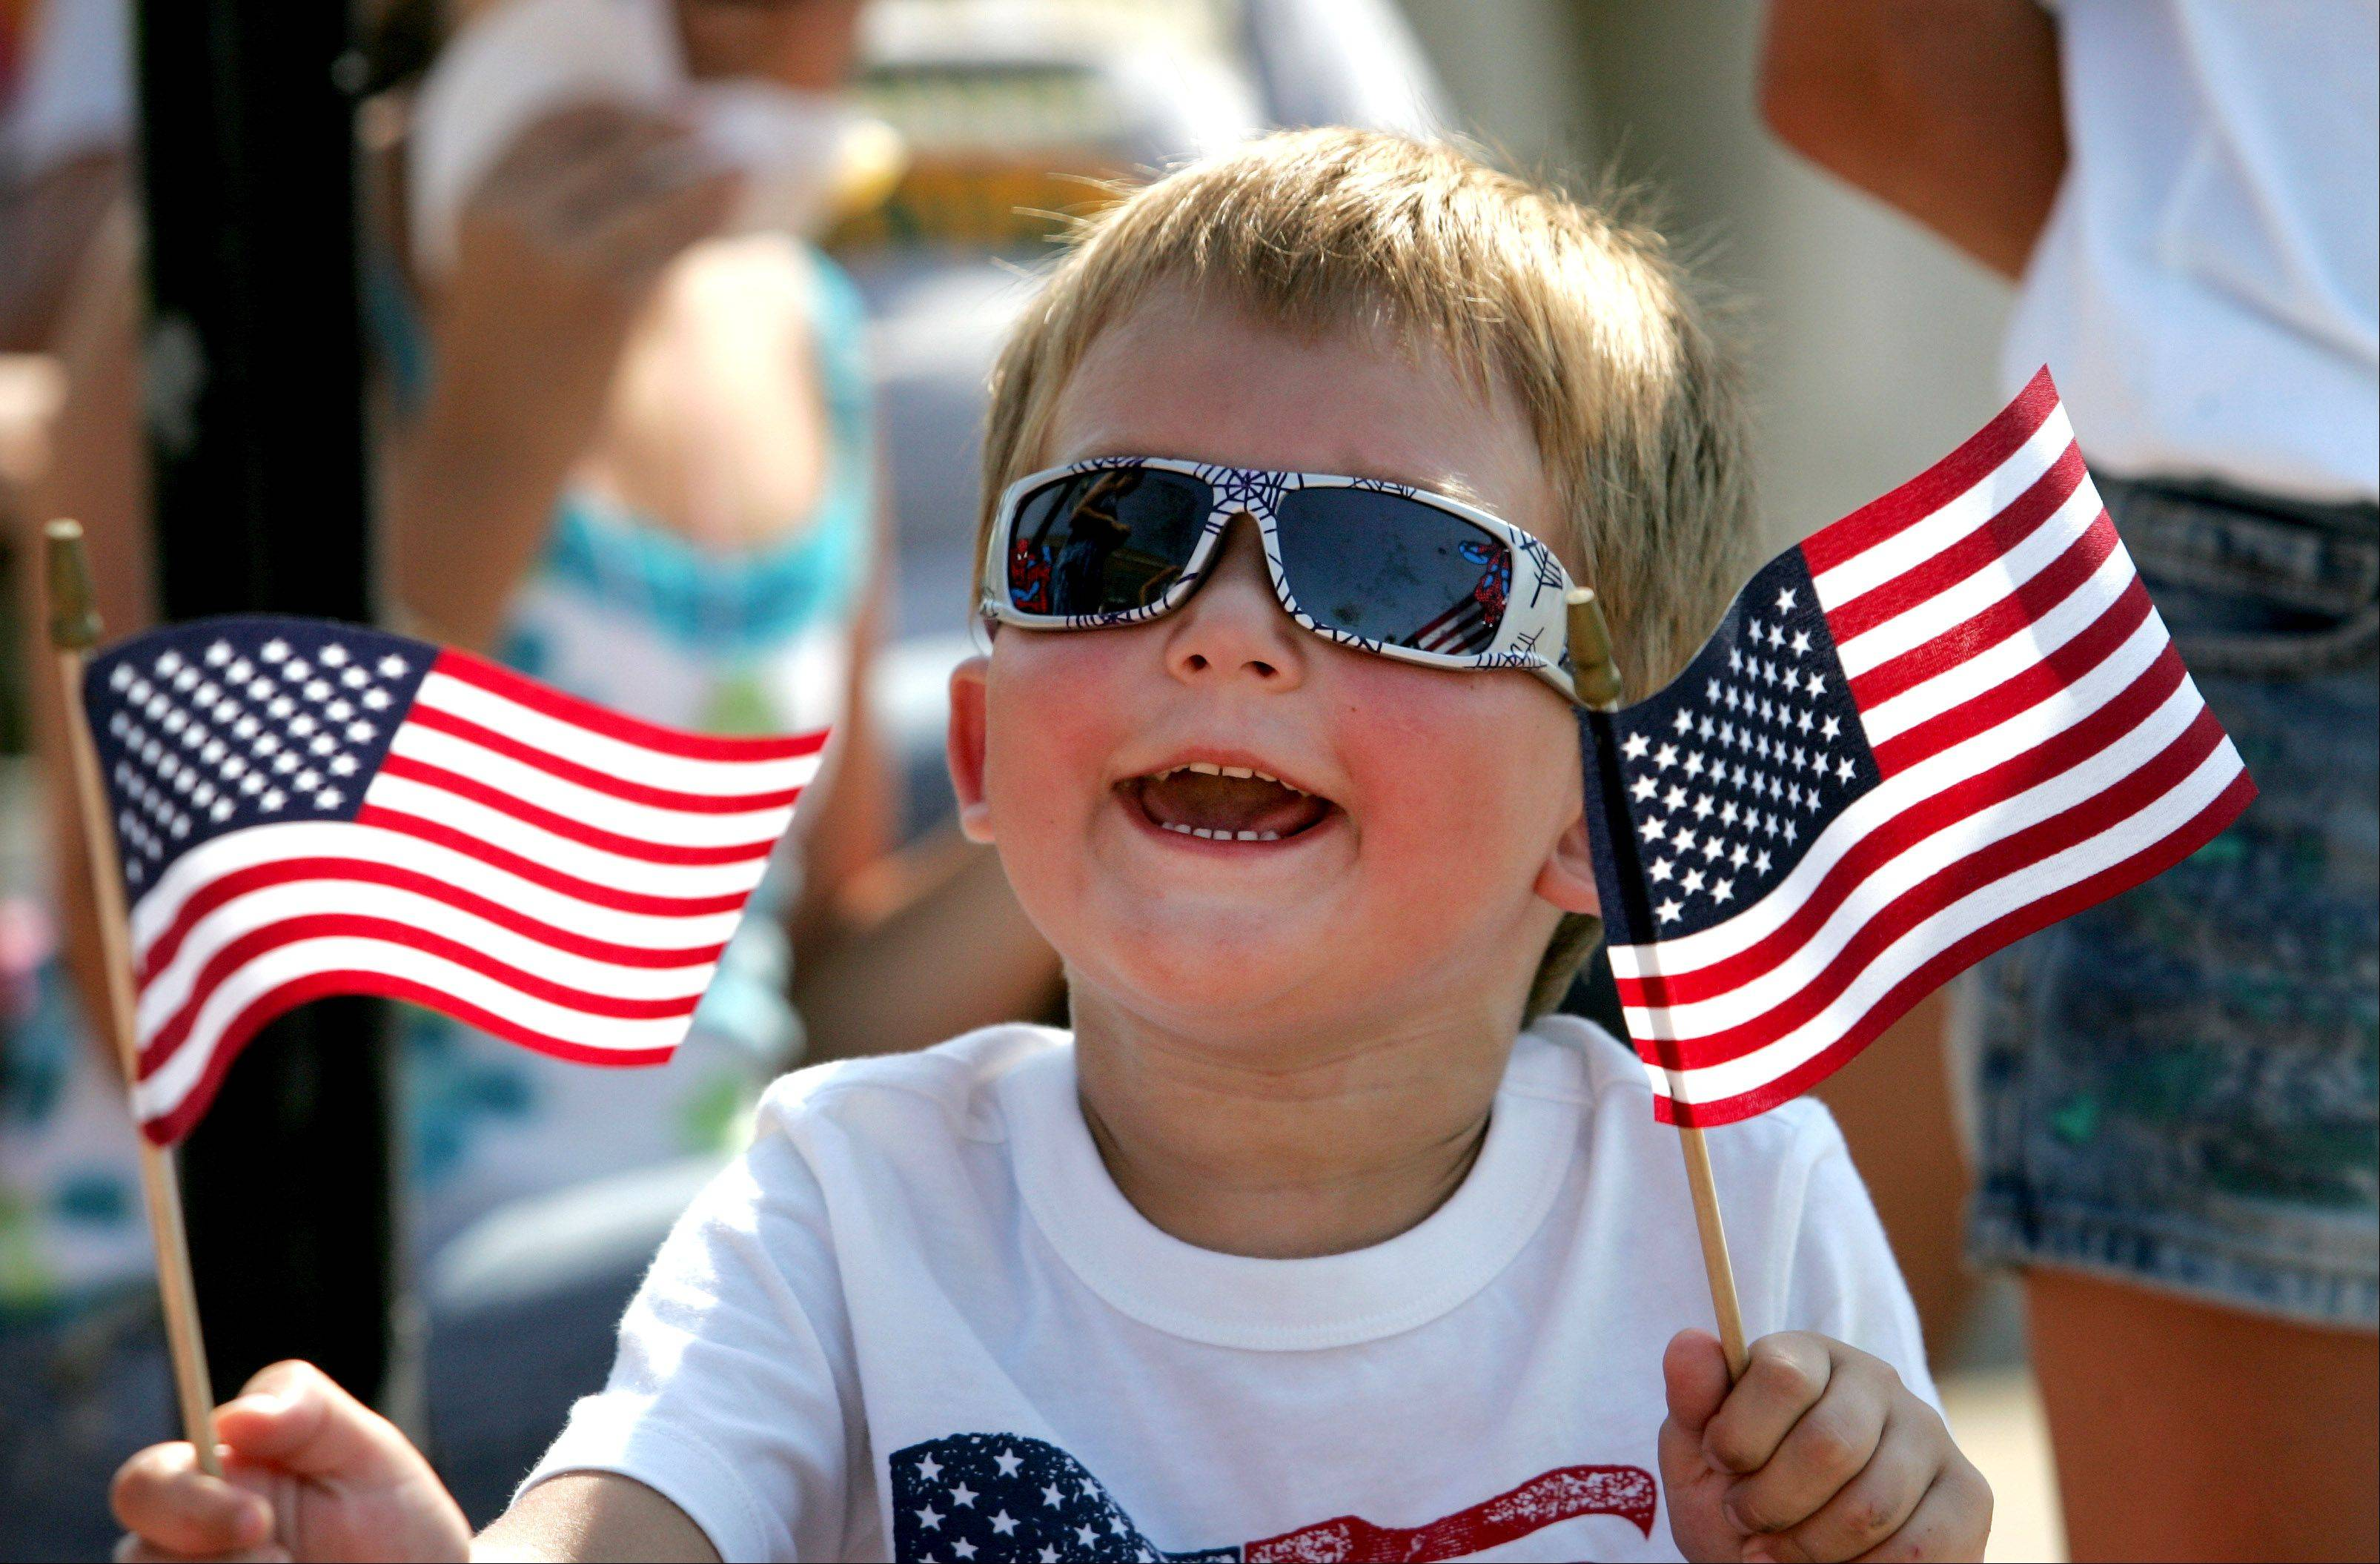 Ethan Greiff, 4, of Aurora, cheers the start of the 4th of July parade in Aurora on Wednesday.